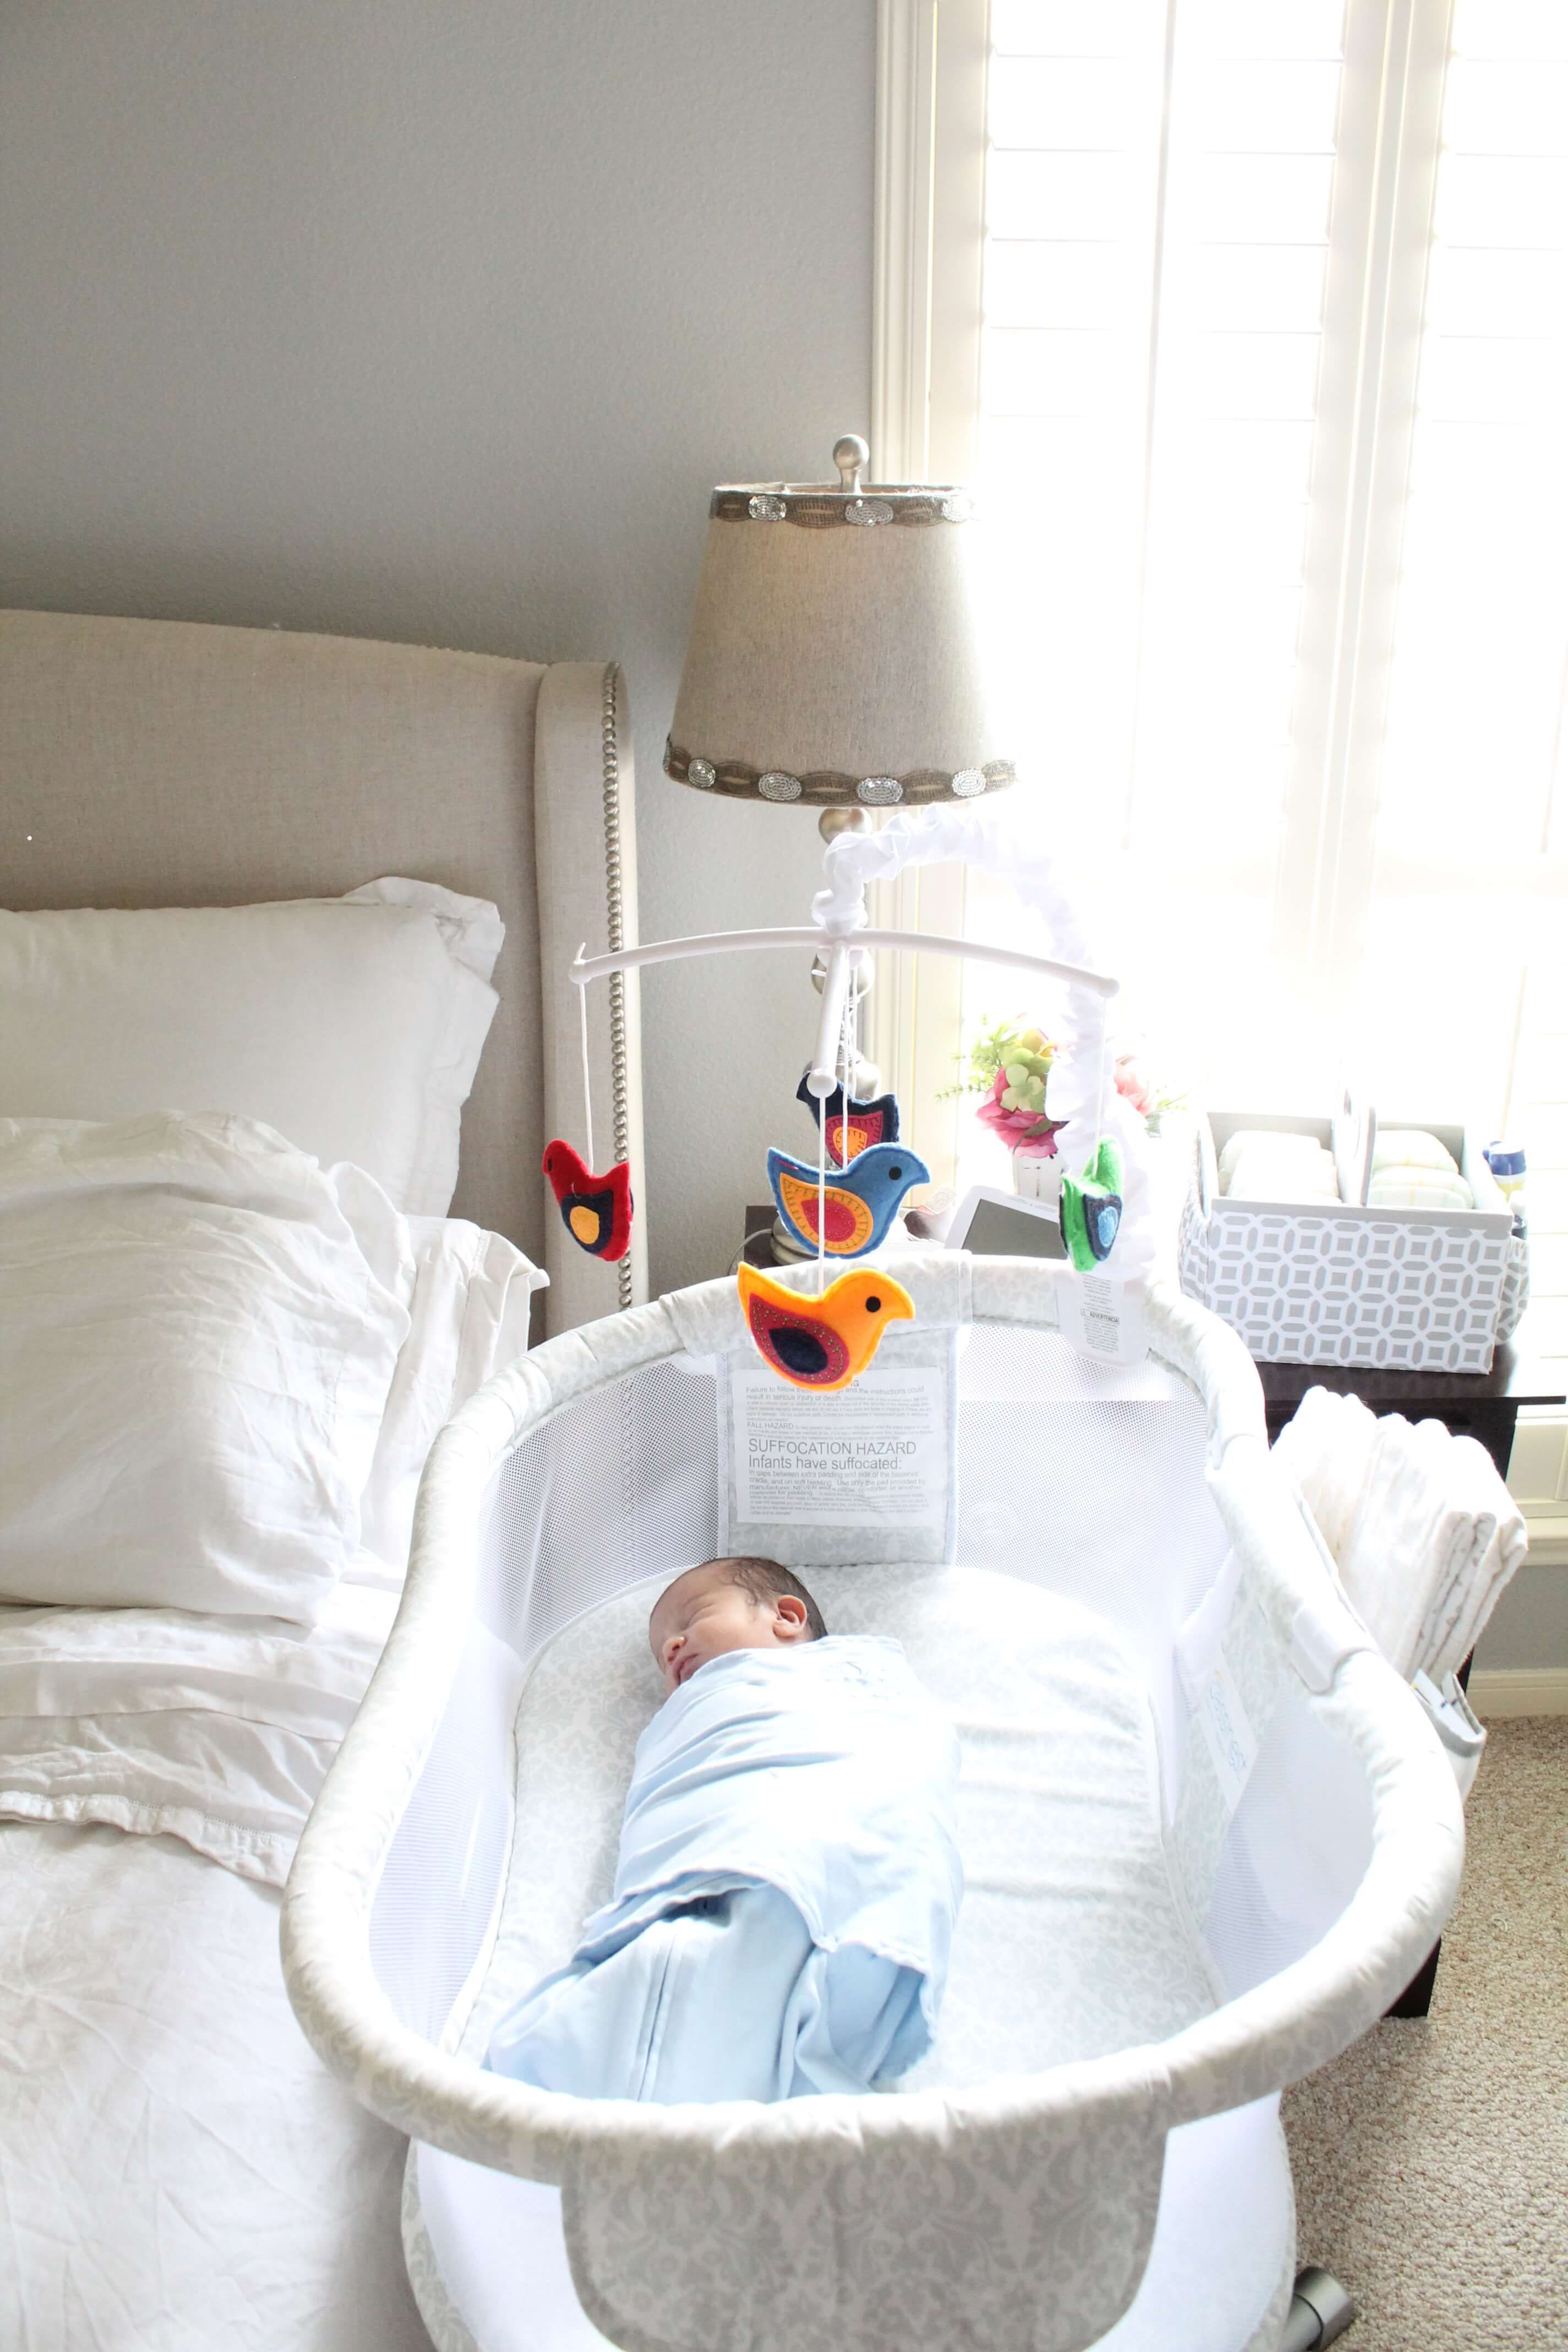 Baby bed vs bassinet - Safe Sleep Tips For Baby From Bassinet To Crib